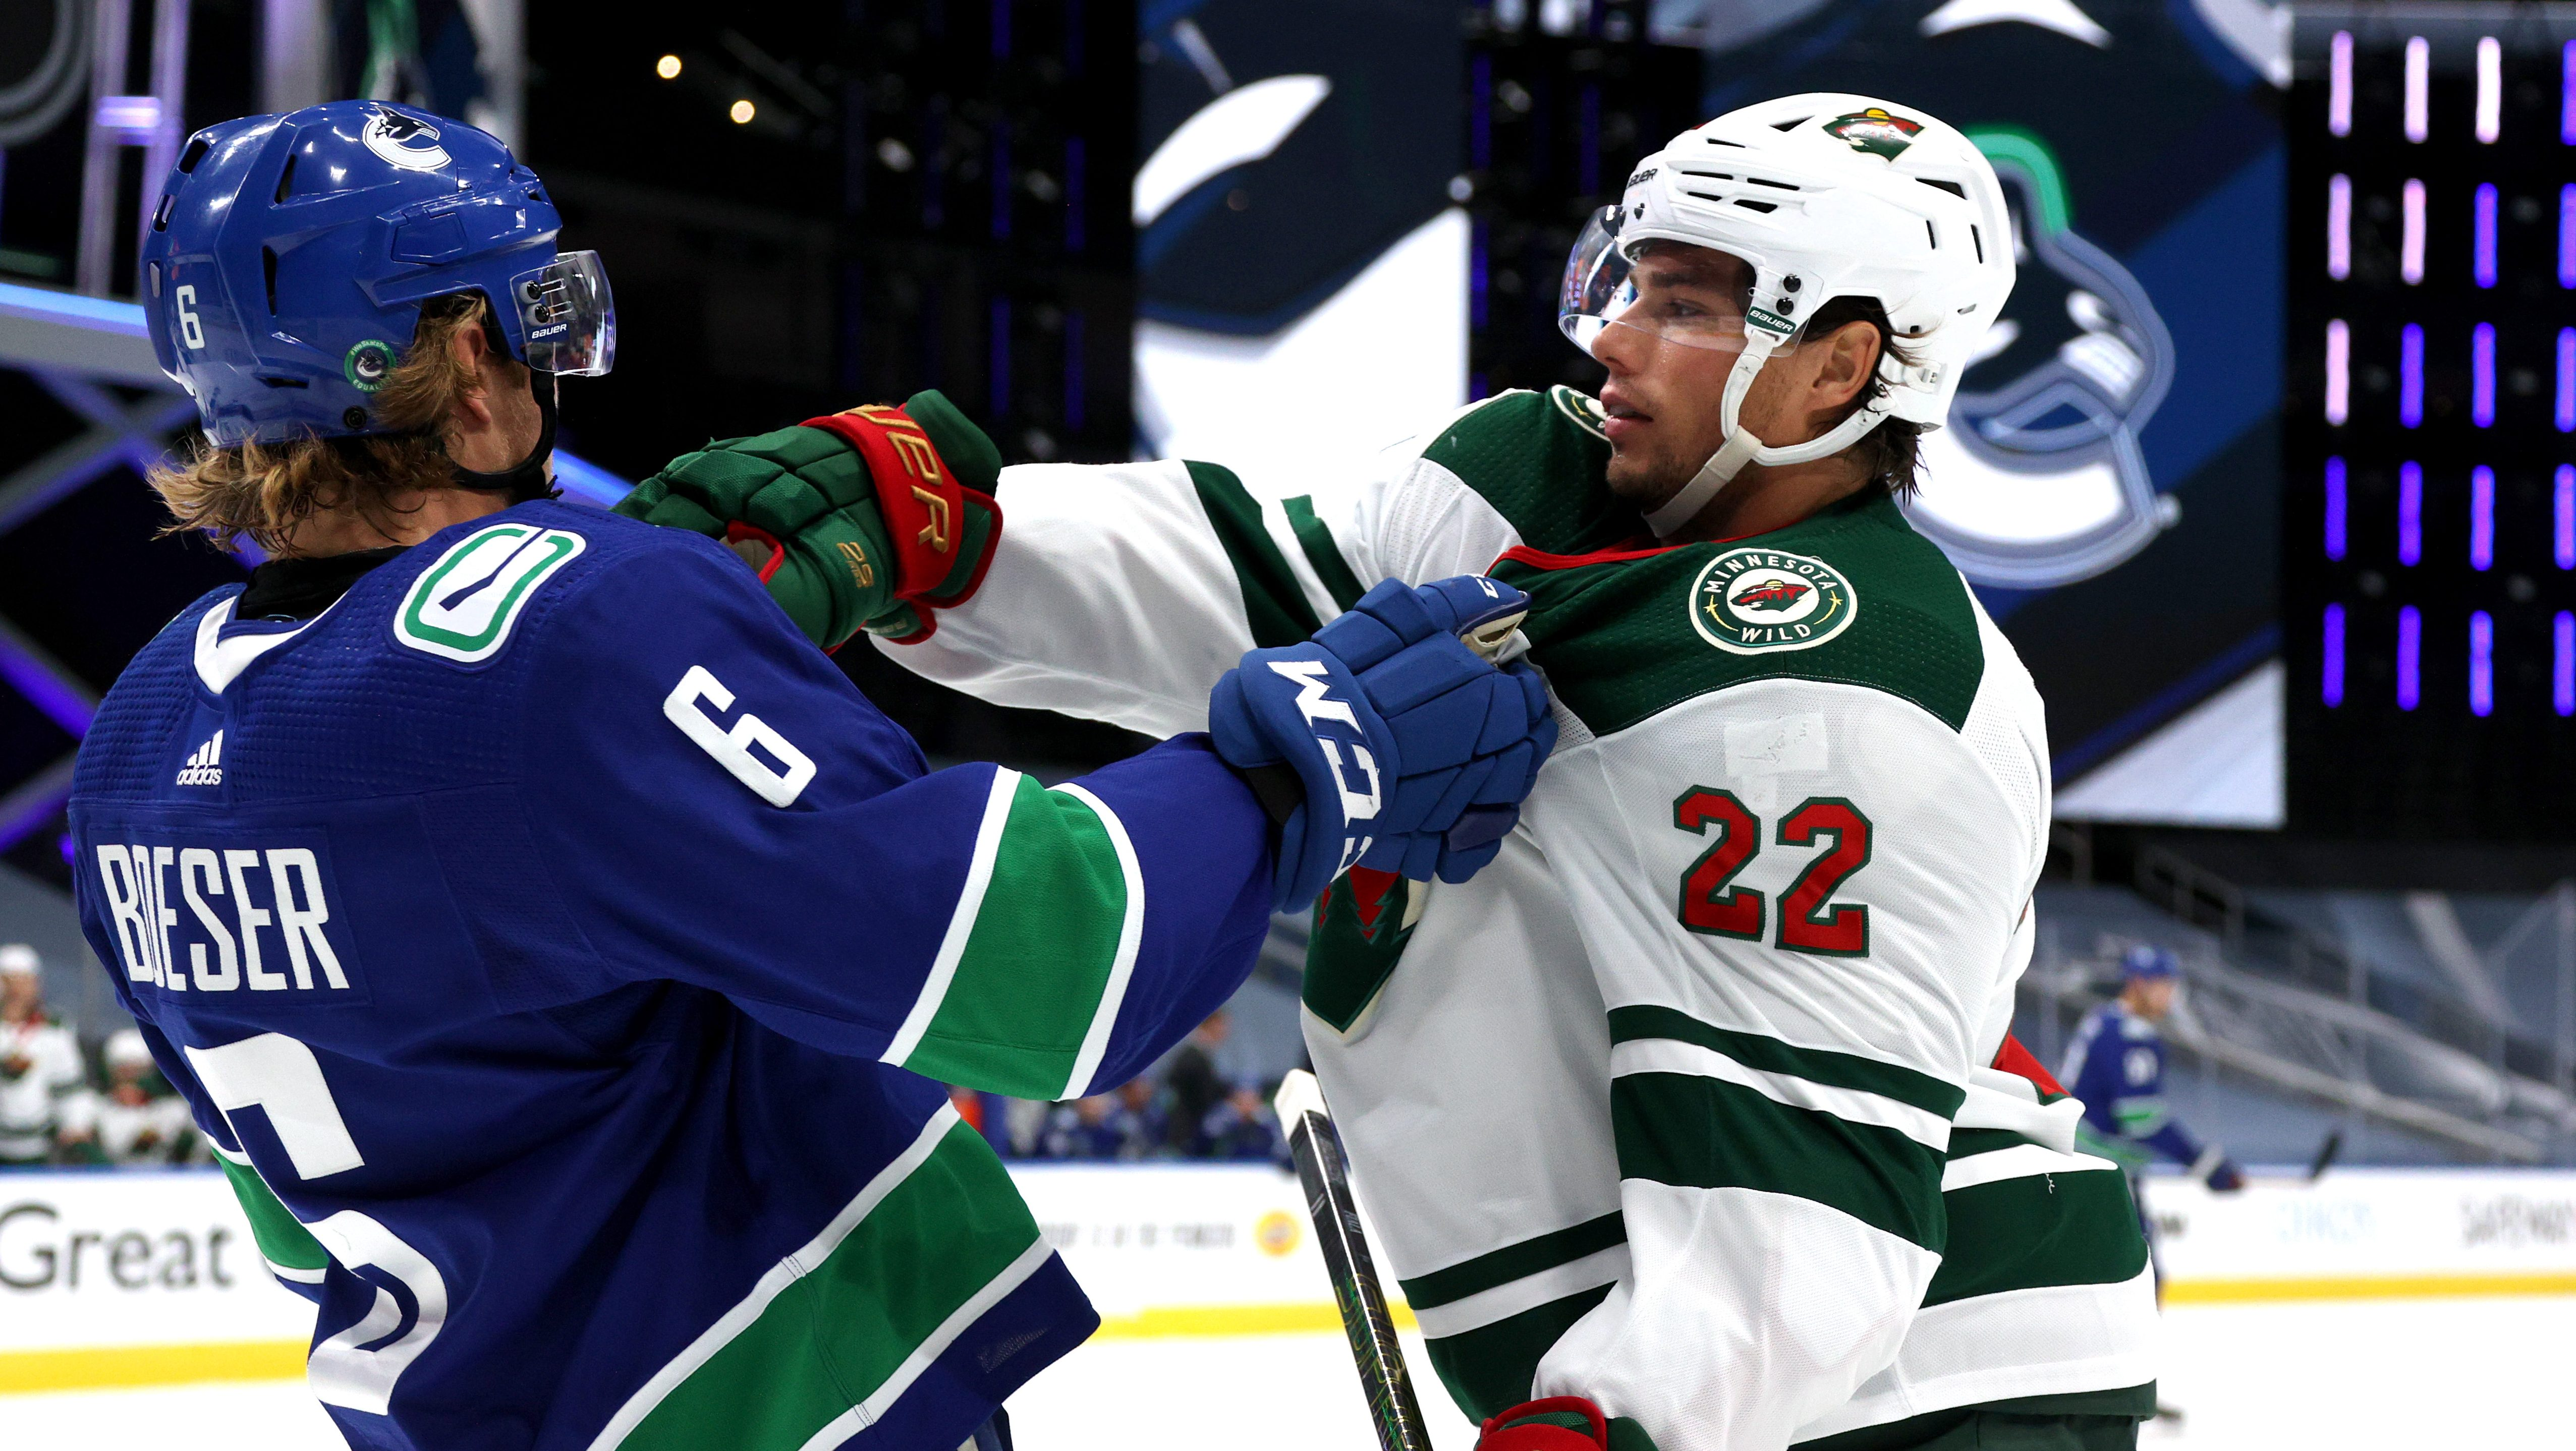 Canucks-Wild stream: 2020 NHL Stanley Cup Qualifiers